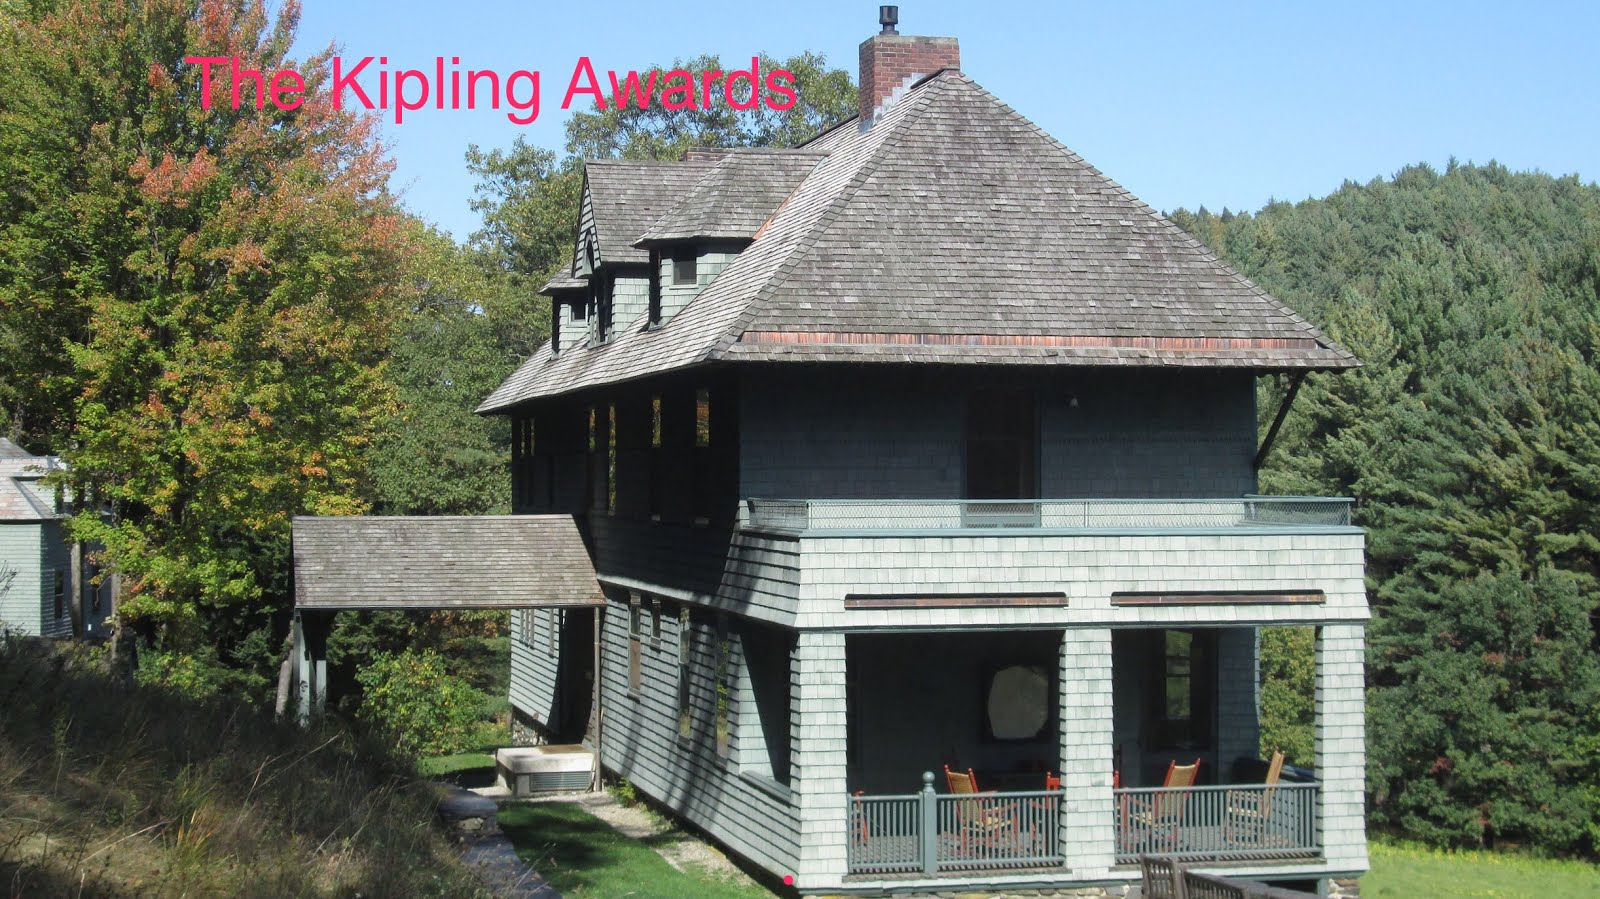 The Kipling Awards